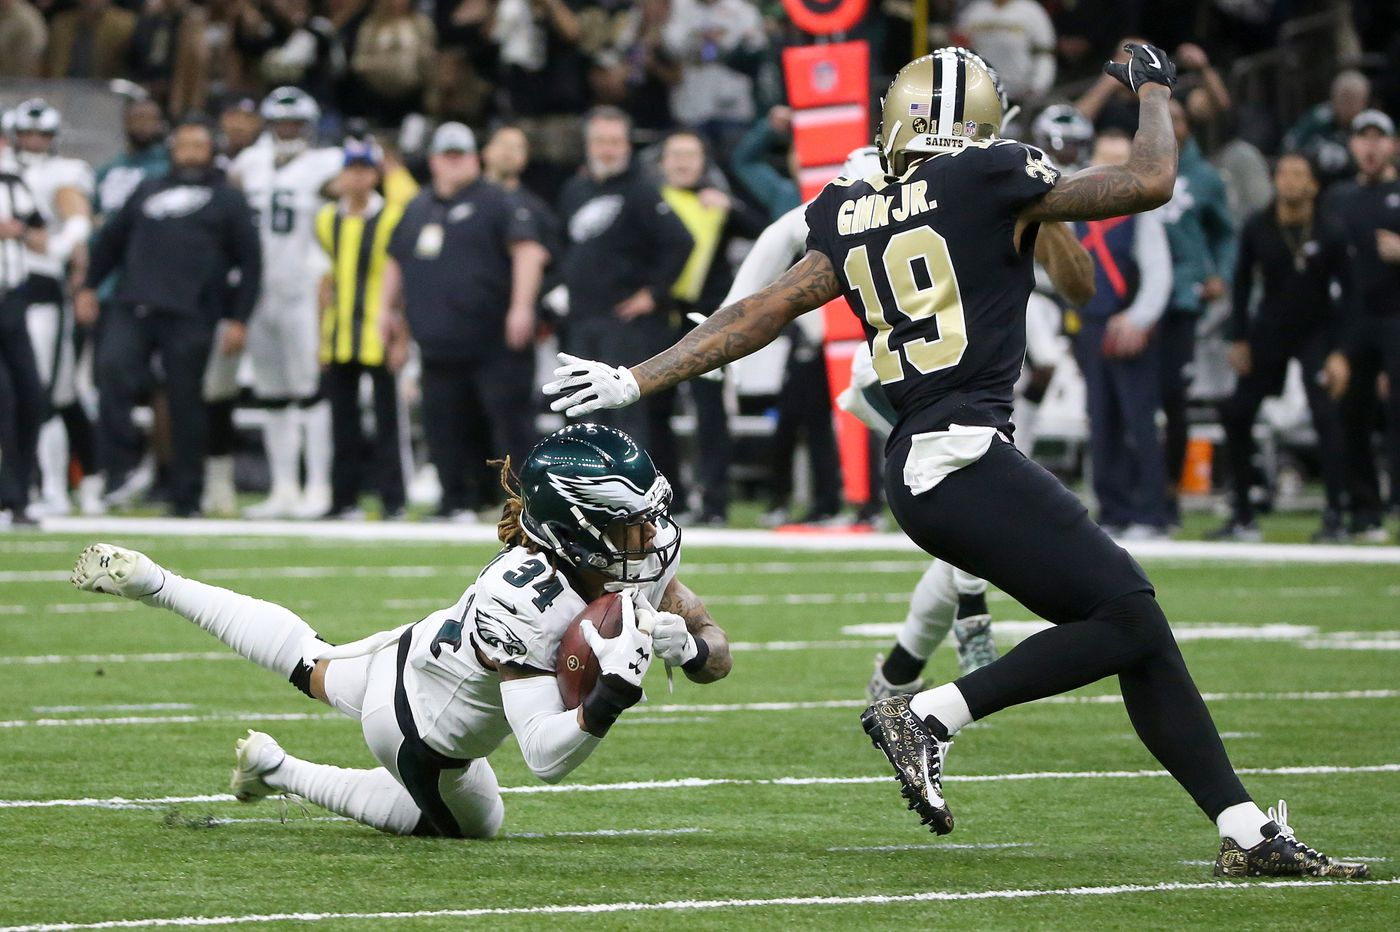 The Eagles lost to the Saints in the playoffs, but they had no business getting there in the first place | Marcus Hayes